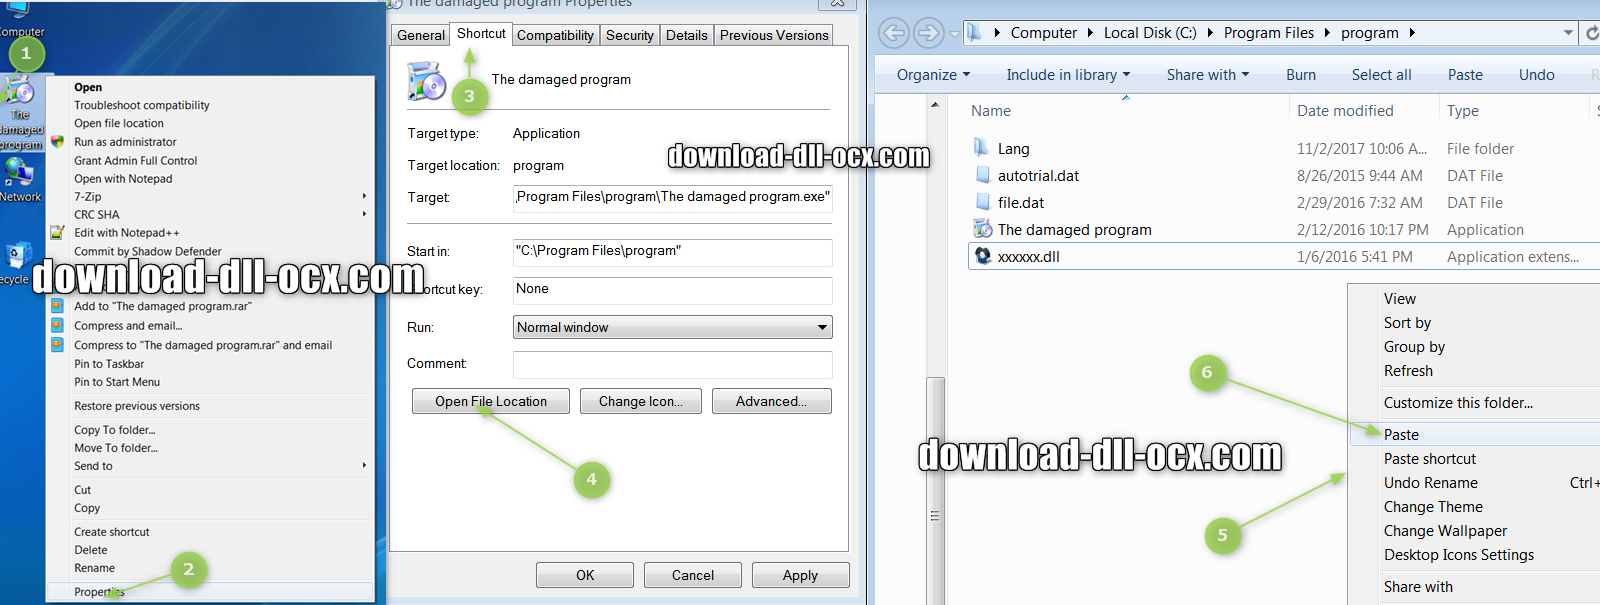 how to install ISymWrapper.dll file? for fix missing